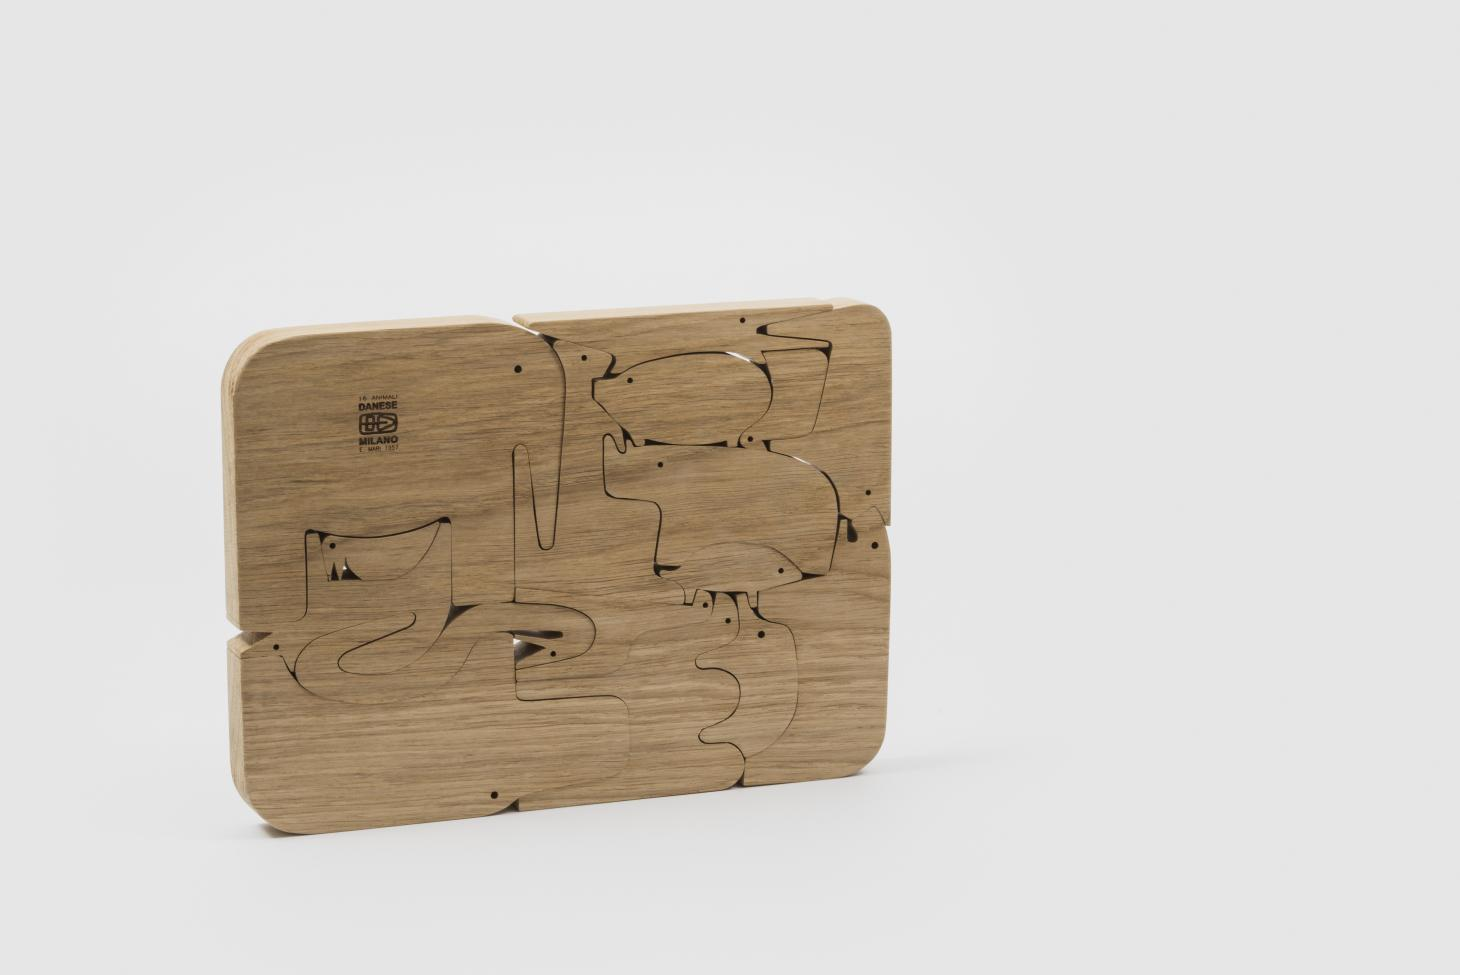 One of Enzo Mari's most celebrated designs was the '16 Animali' wooden puzzle, featuring interlocking animal shapes, produced by Danese